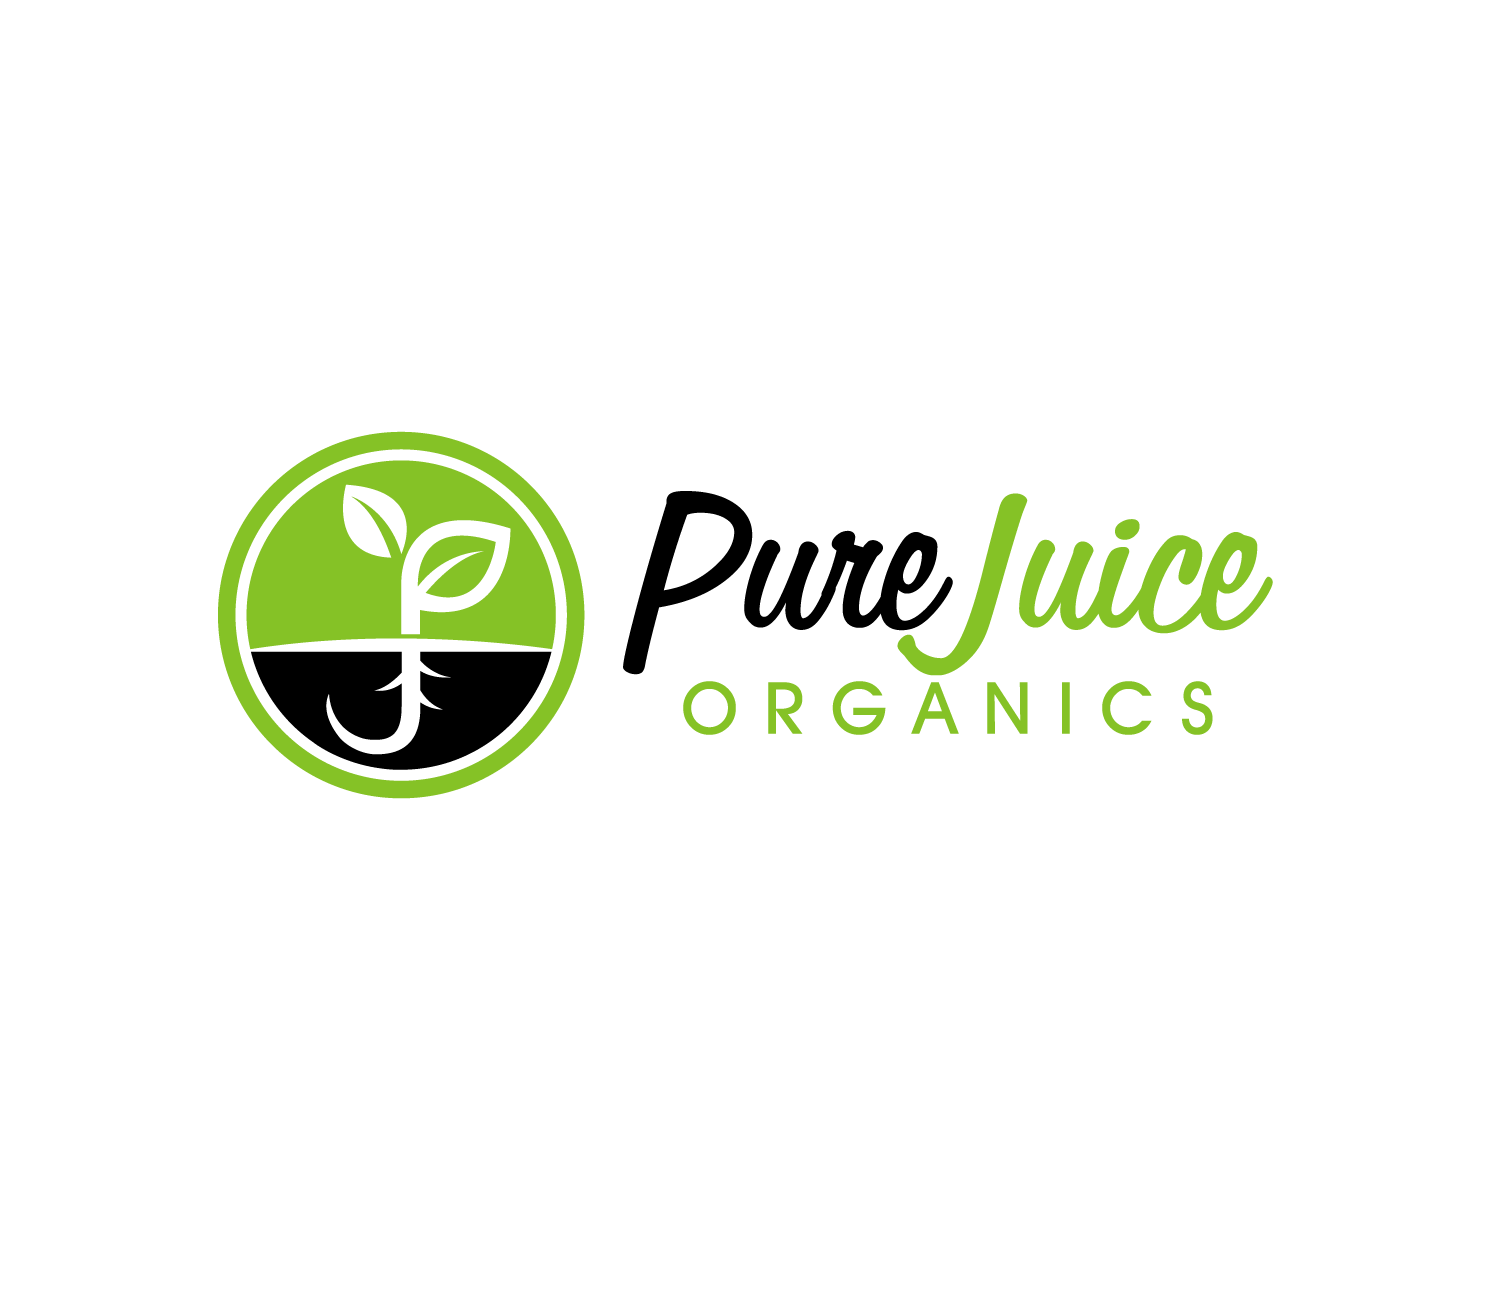 Help Pure Juice with a new logo